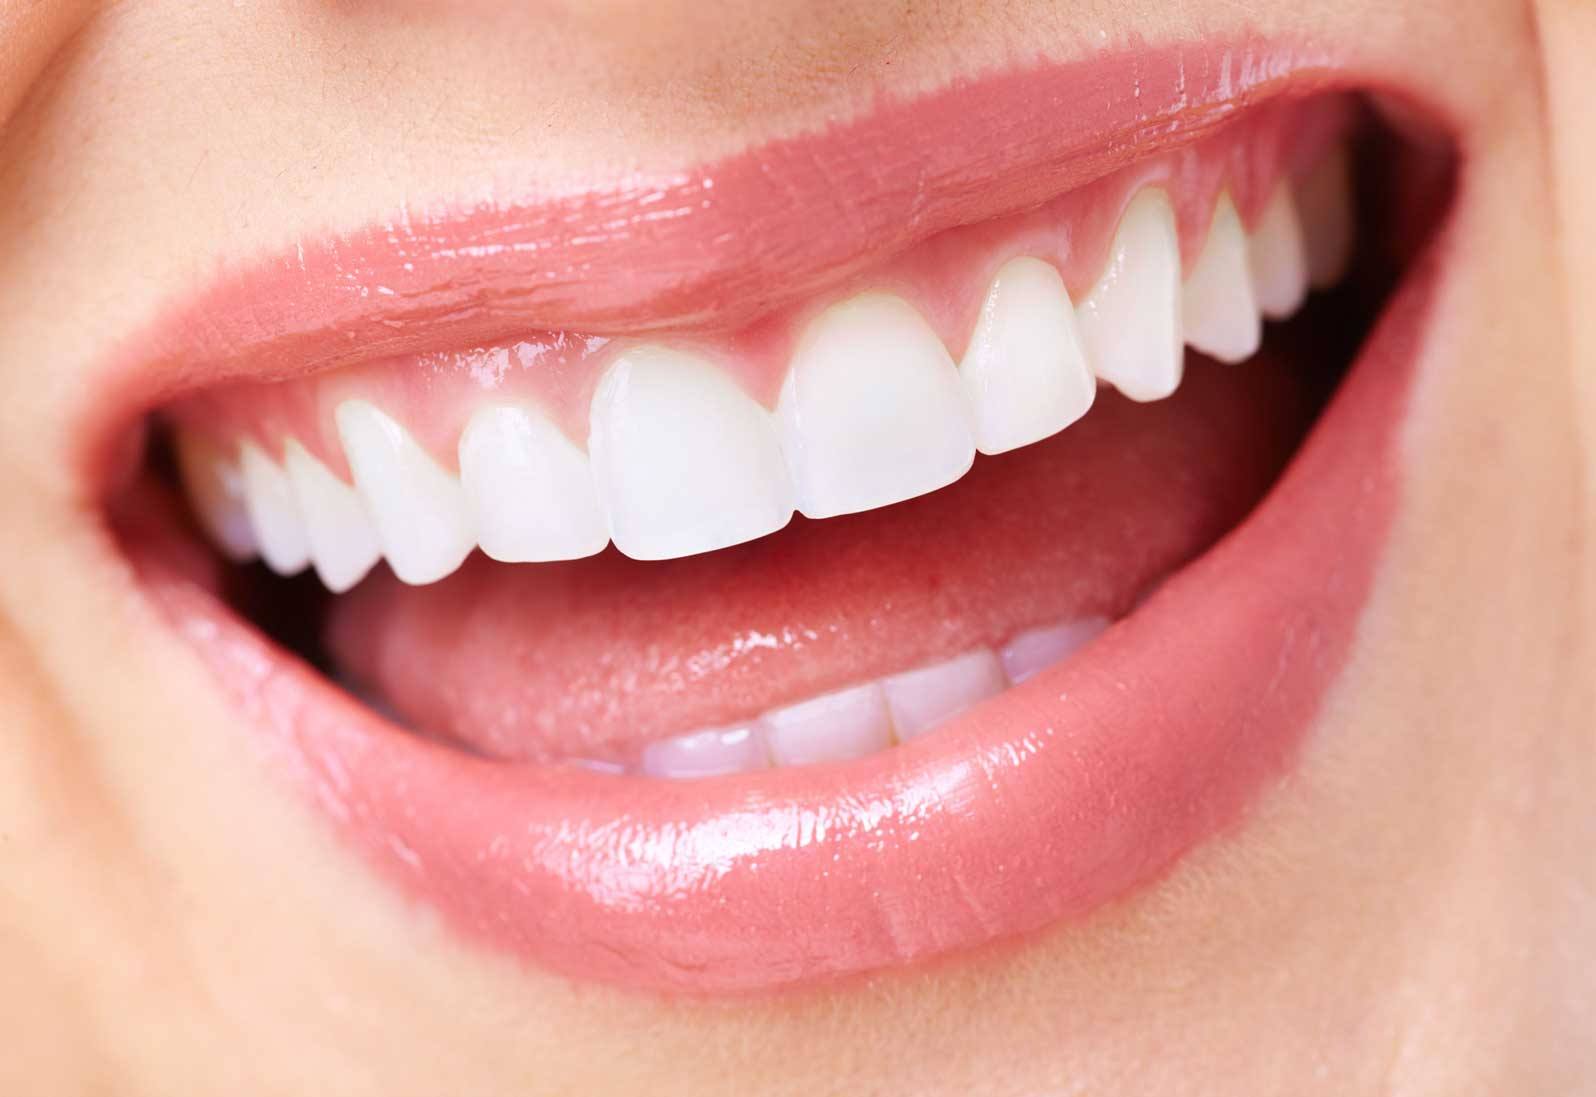 8 Things You Should Know About Porcelain Veneers - Dr. Rick Dentistry